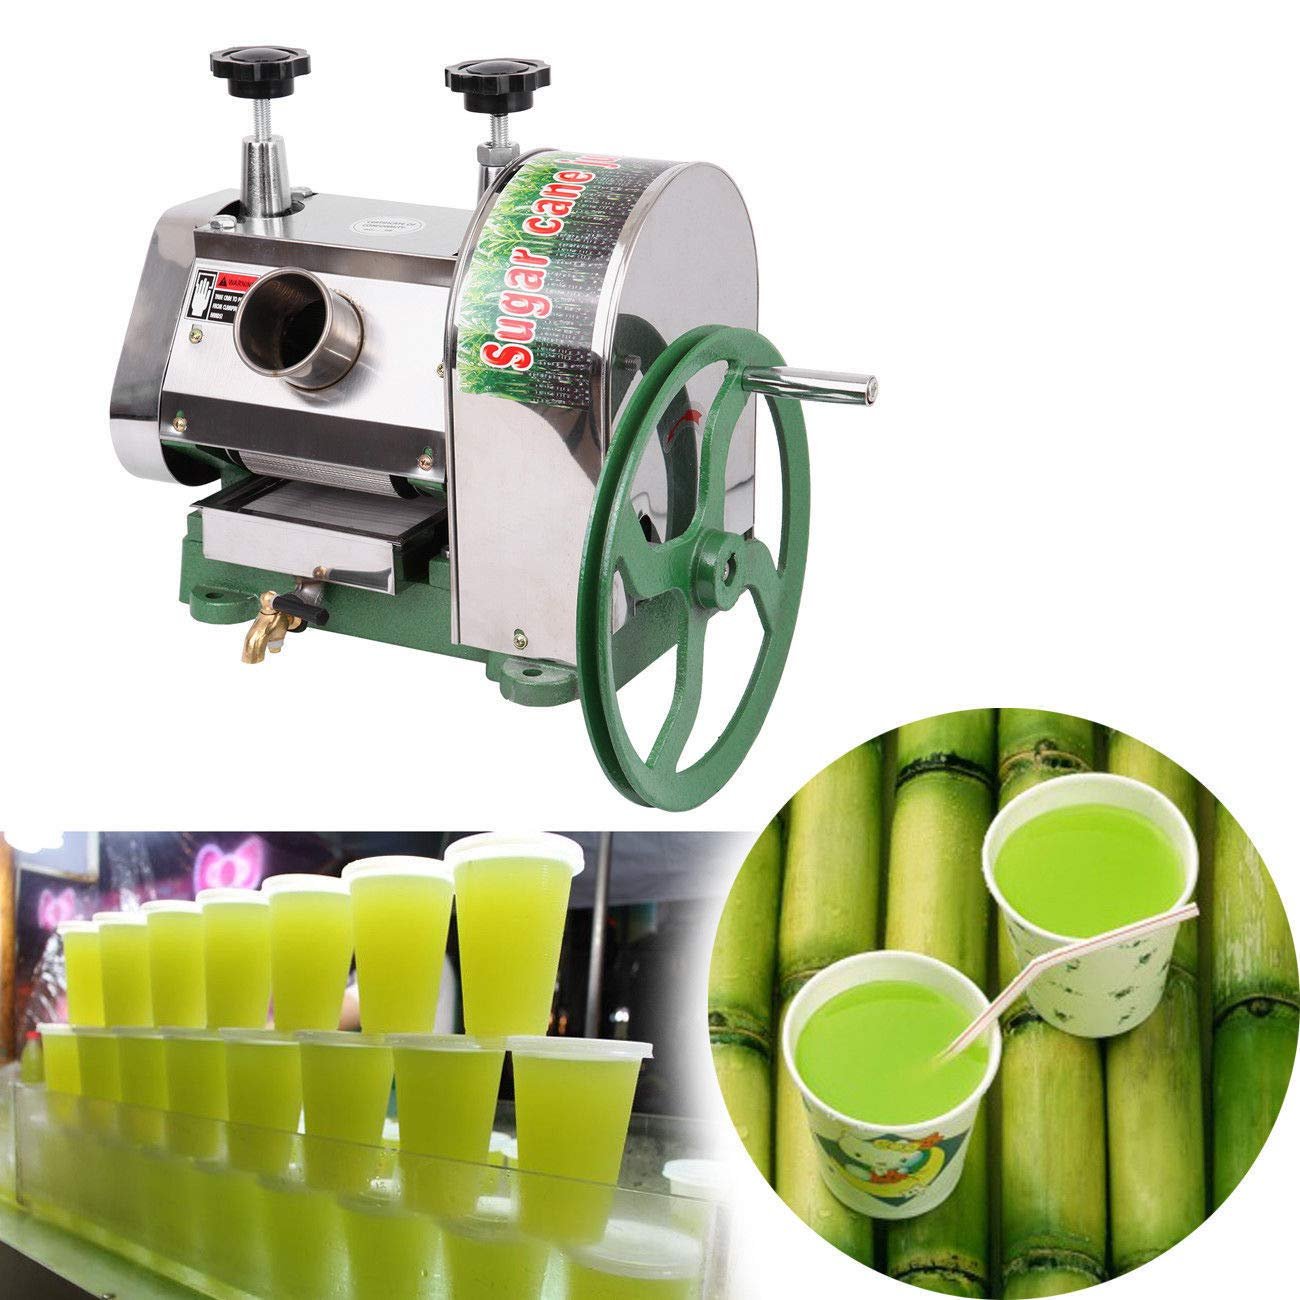 TryE Sugarcane Juicer Machine Manual Sugar Cane Press Extractor Squeezer by TryE